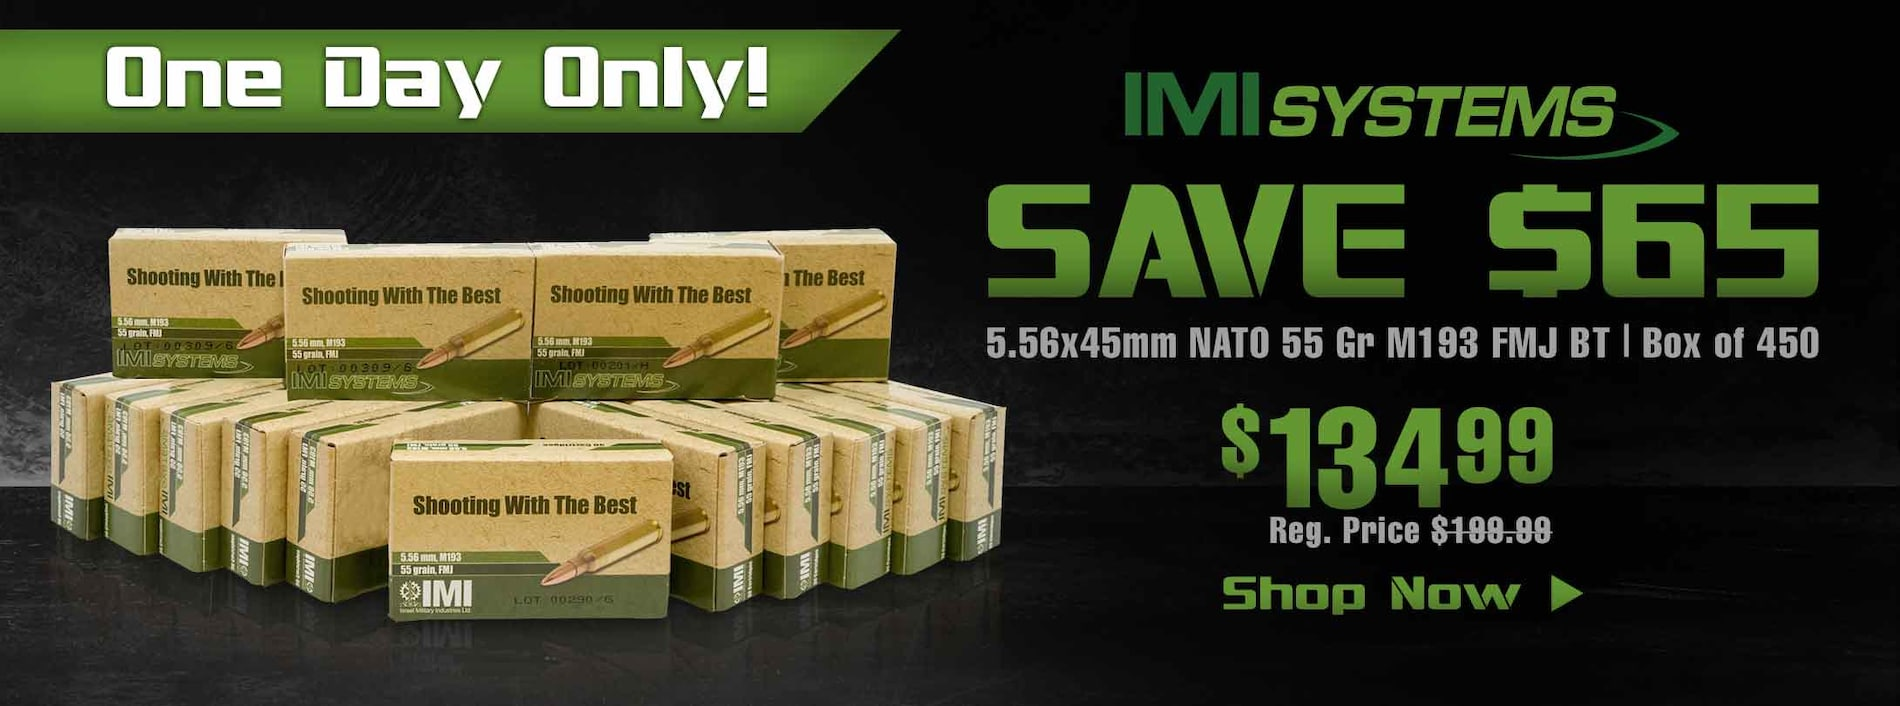 Save $65 on IMI 5.56x45mm 55 Gr M193 Box of 450